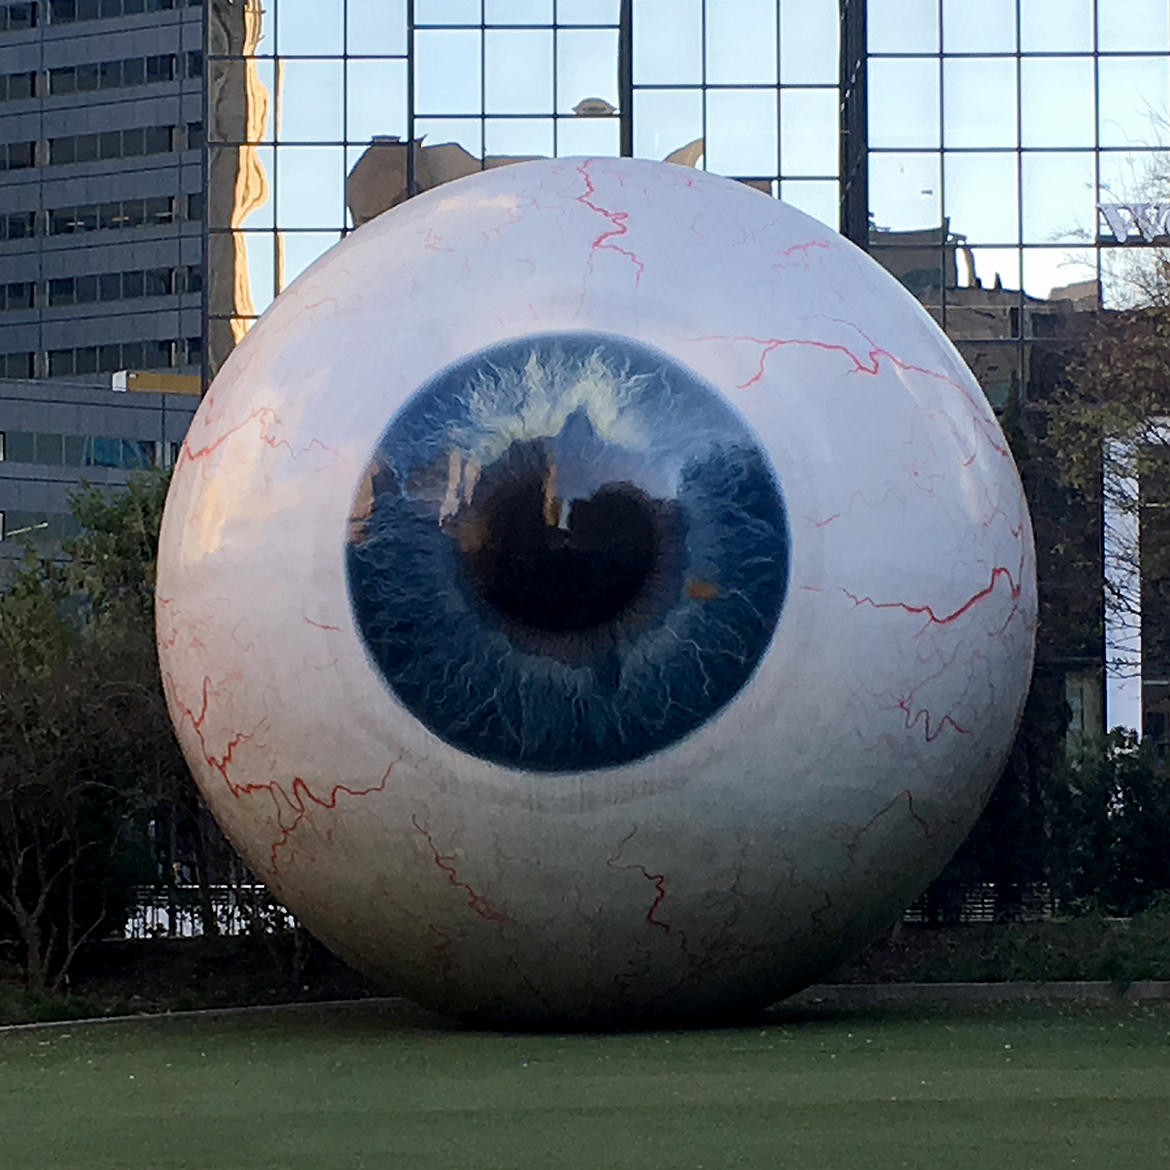 a giant fiberglass sculpture of a human eye, front view